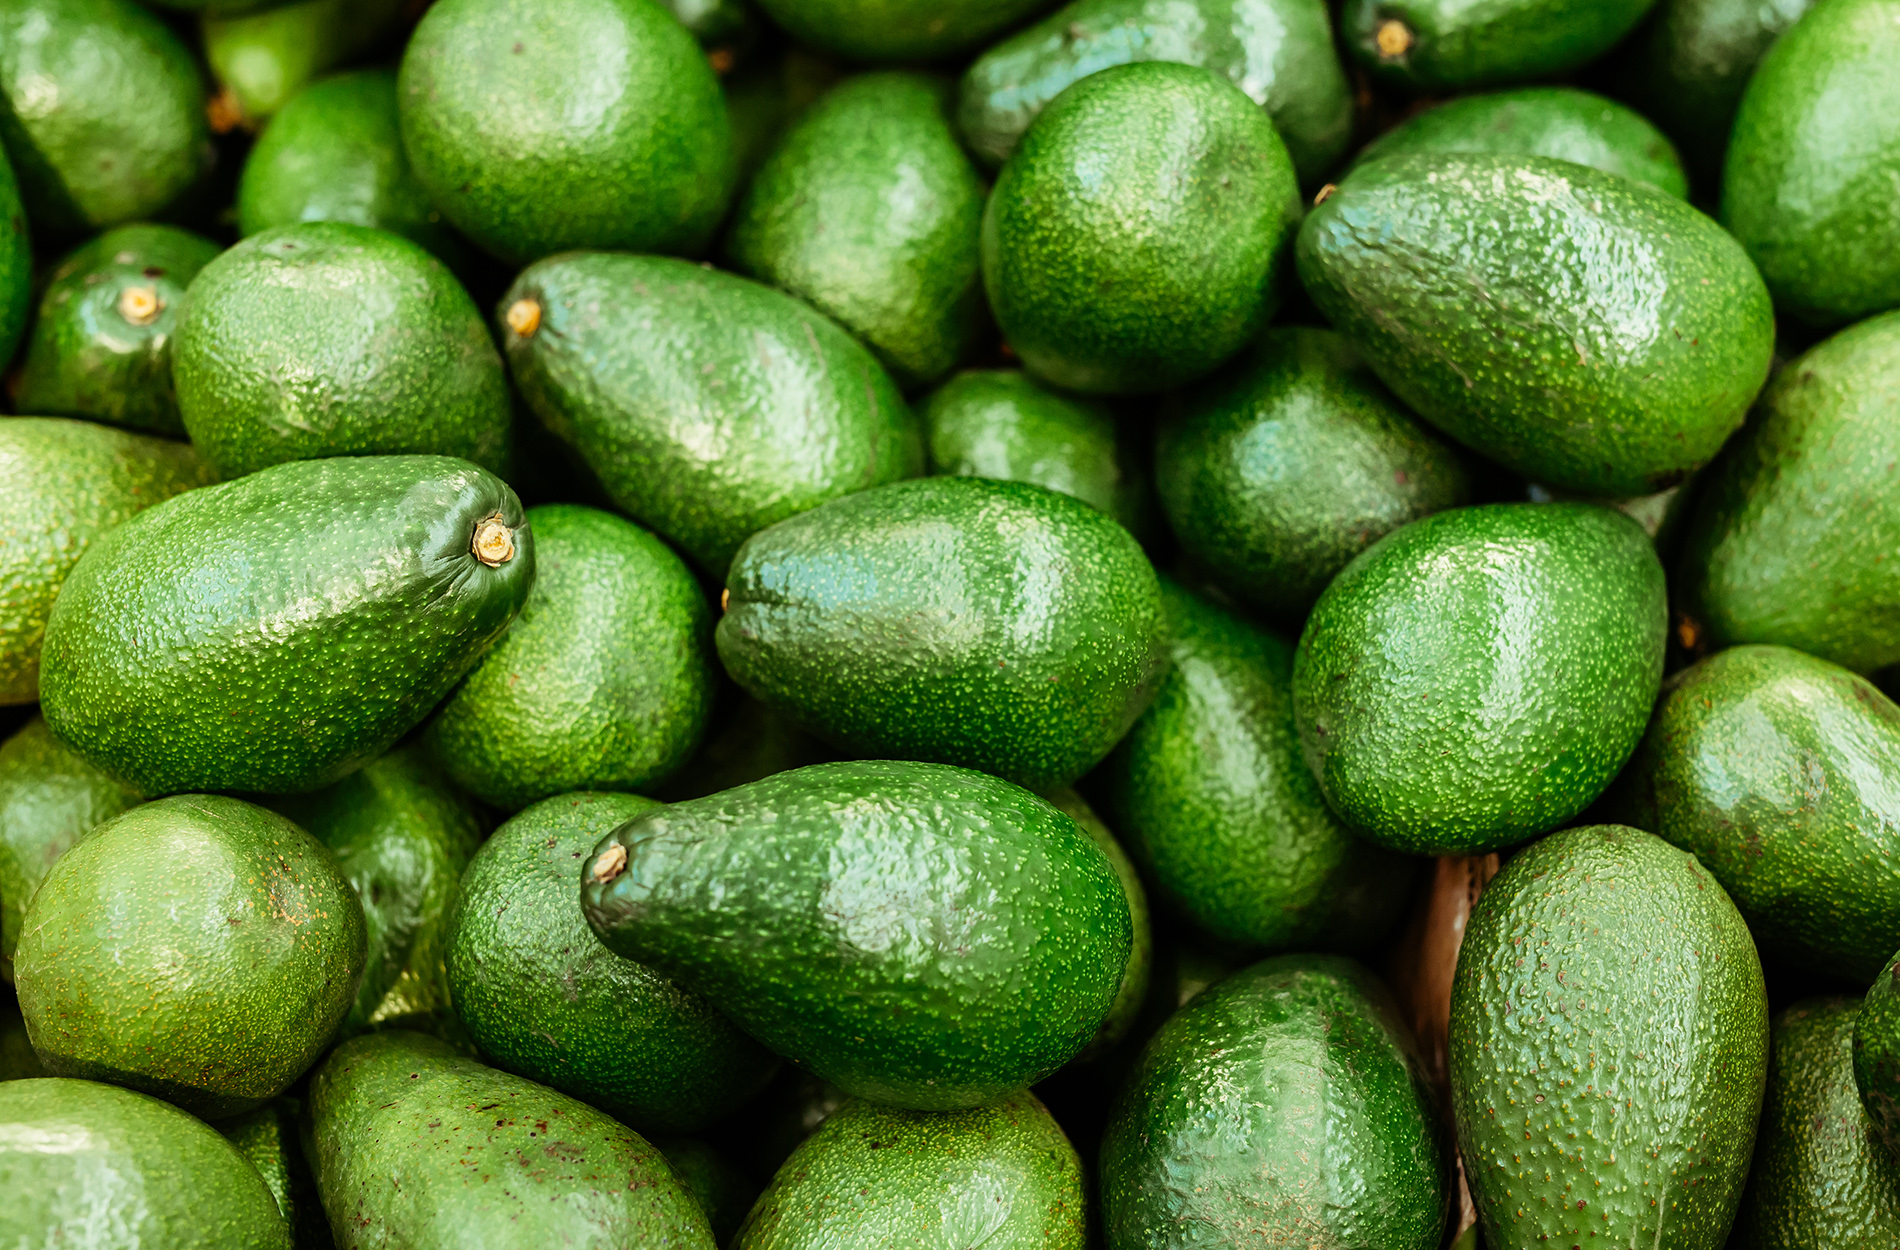 Close up of dozens of avocados